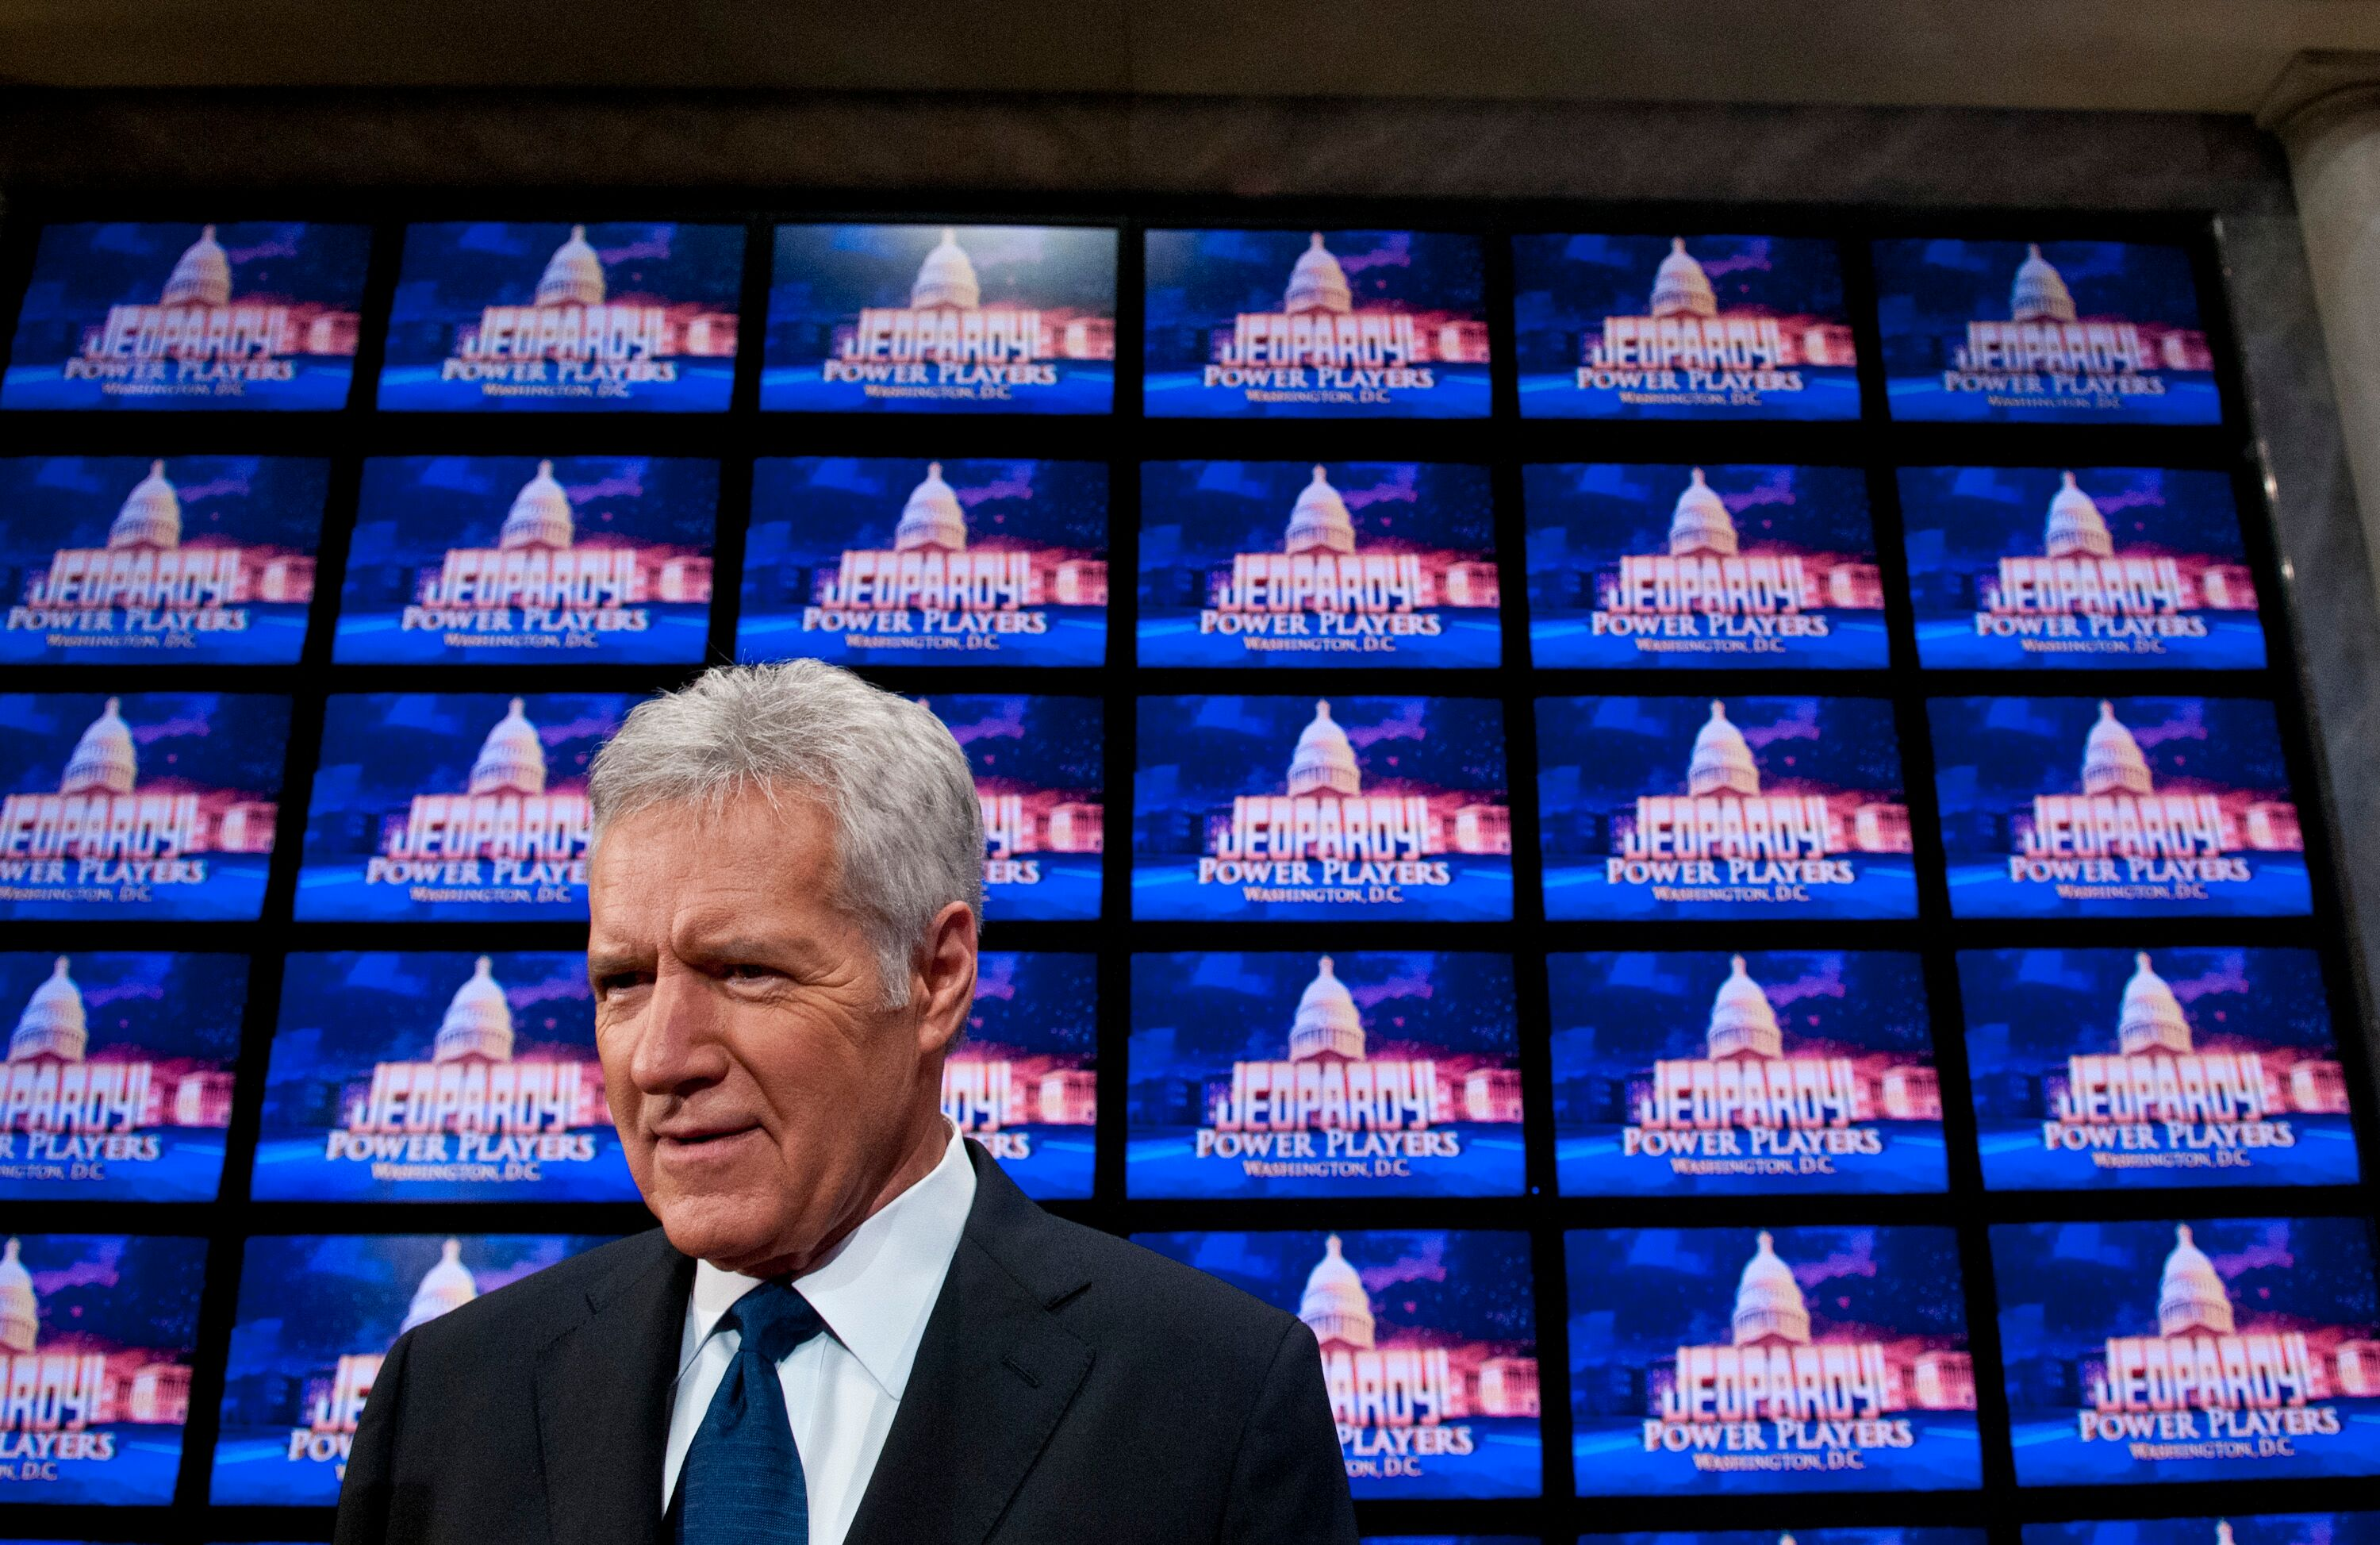 "Alex Trebek hosts ""Jeopardy! Power Players"" on the long-running ABC game show in 2016 